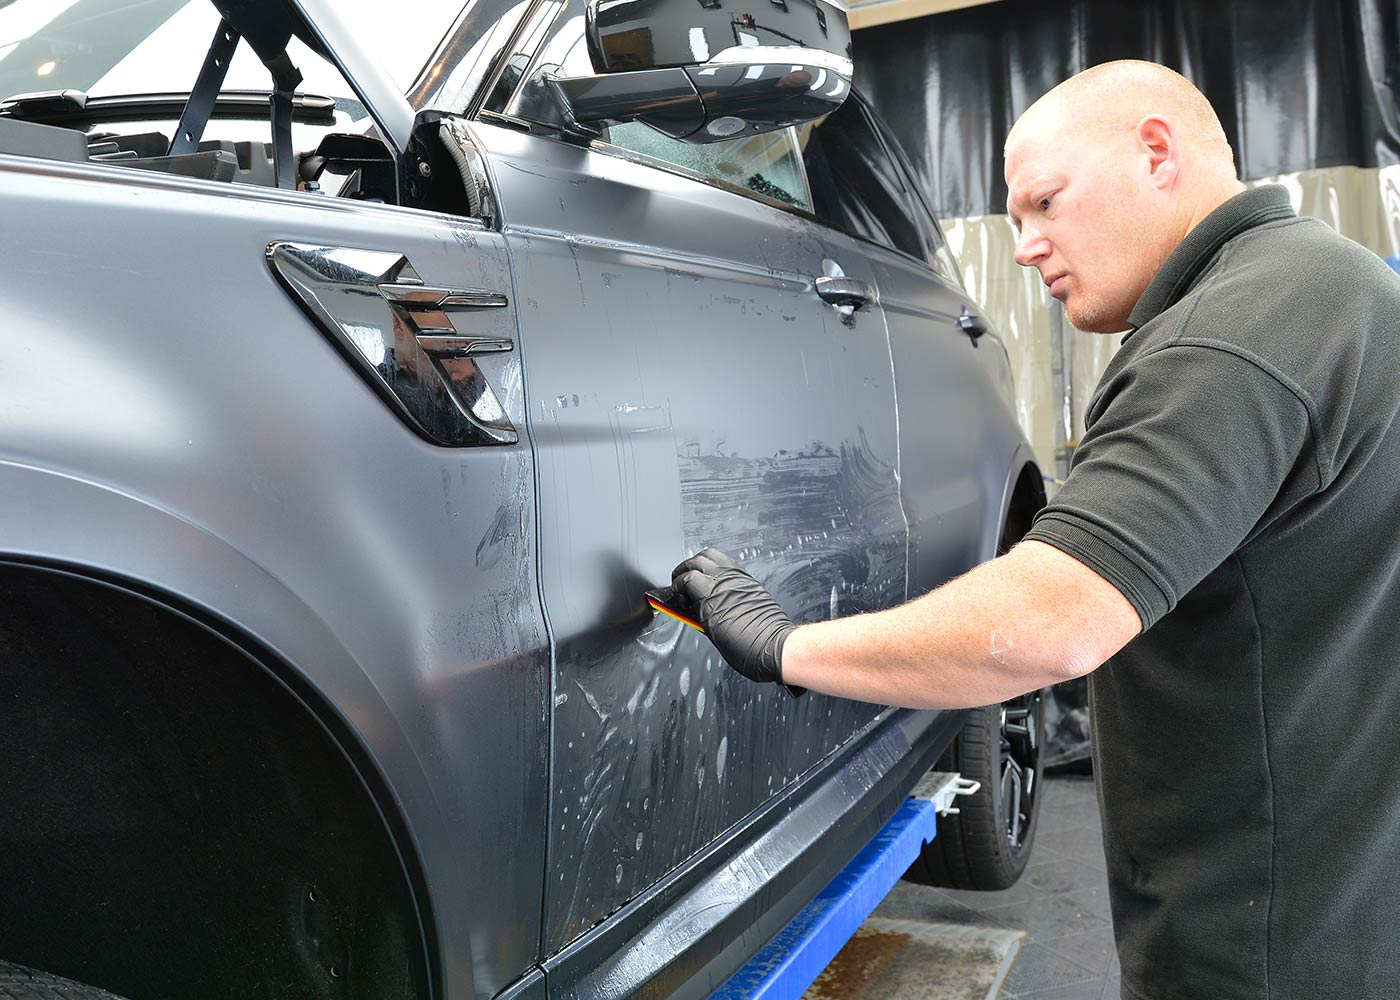 Paint protection Film for matte paint finishes